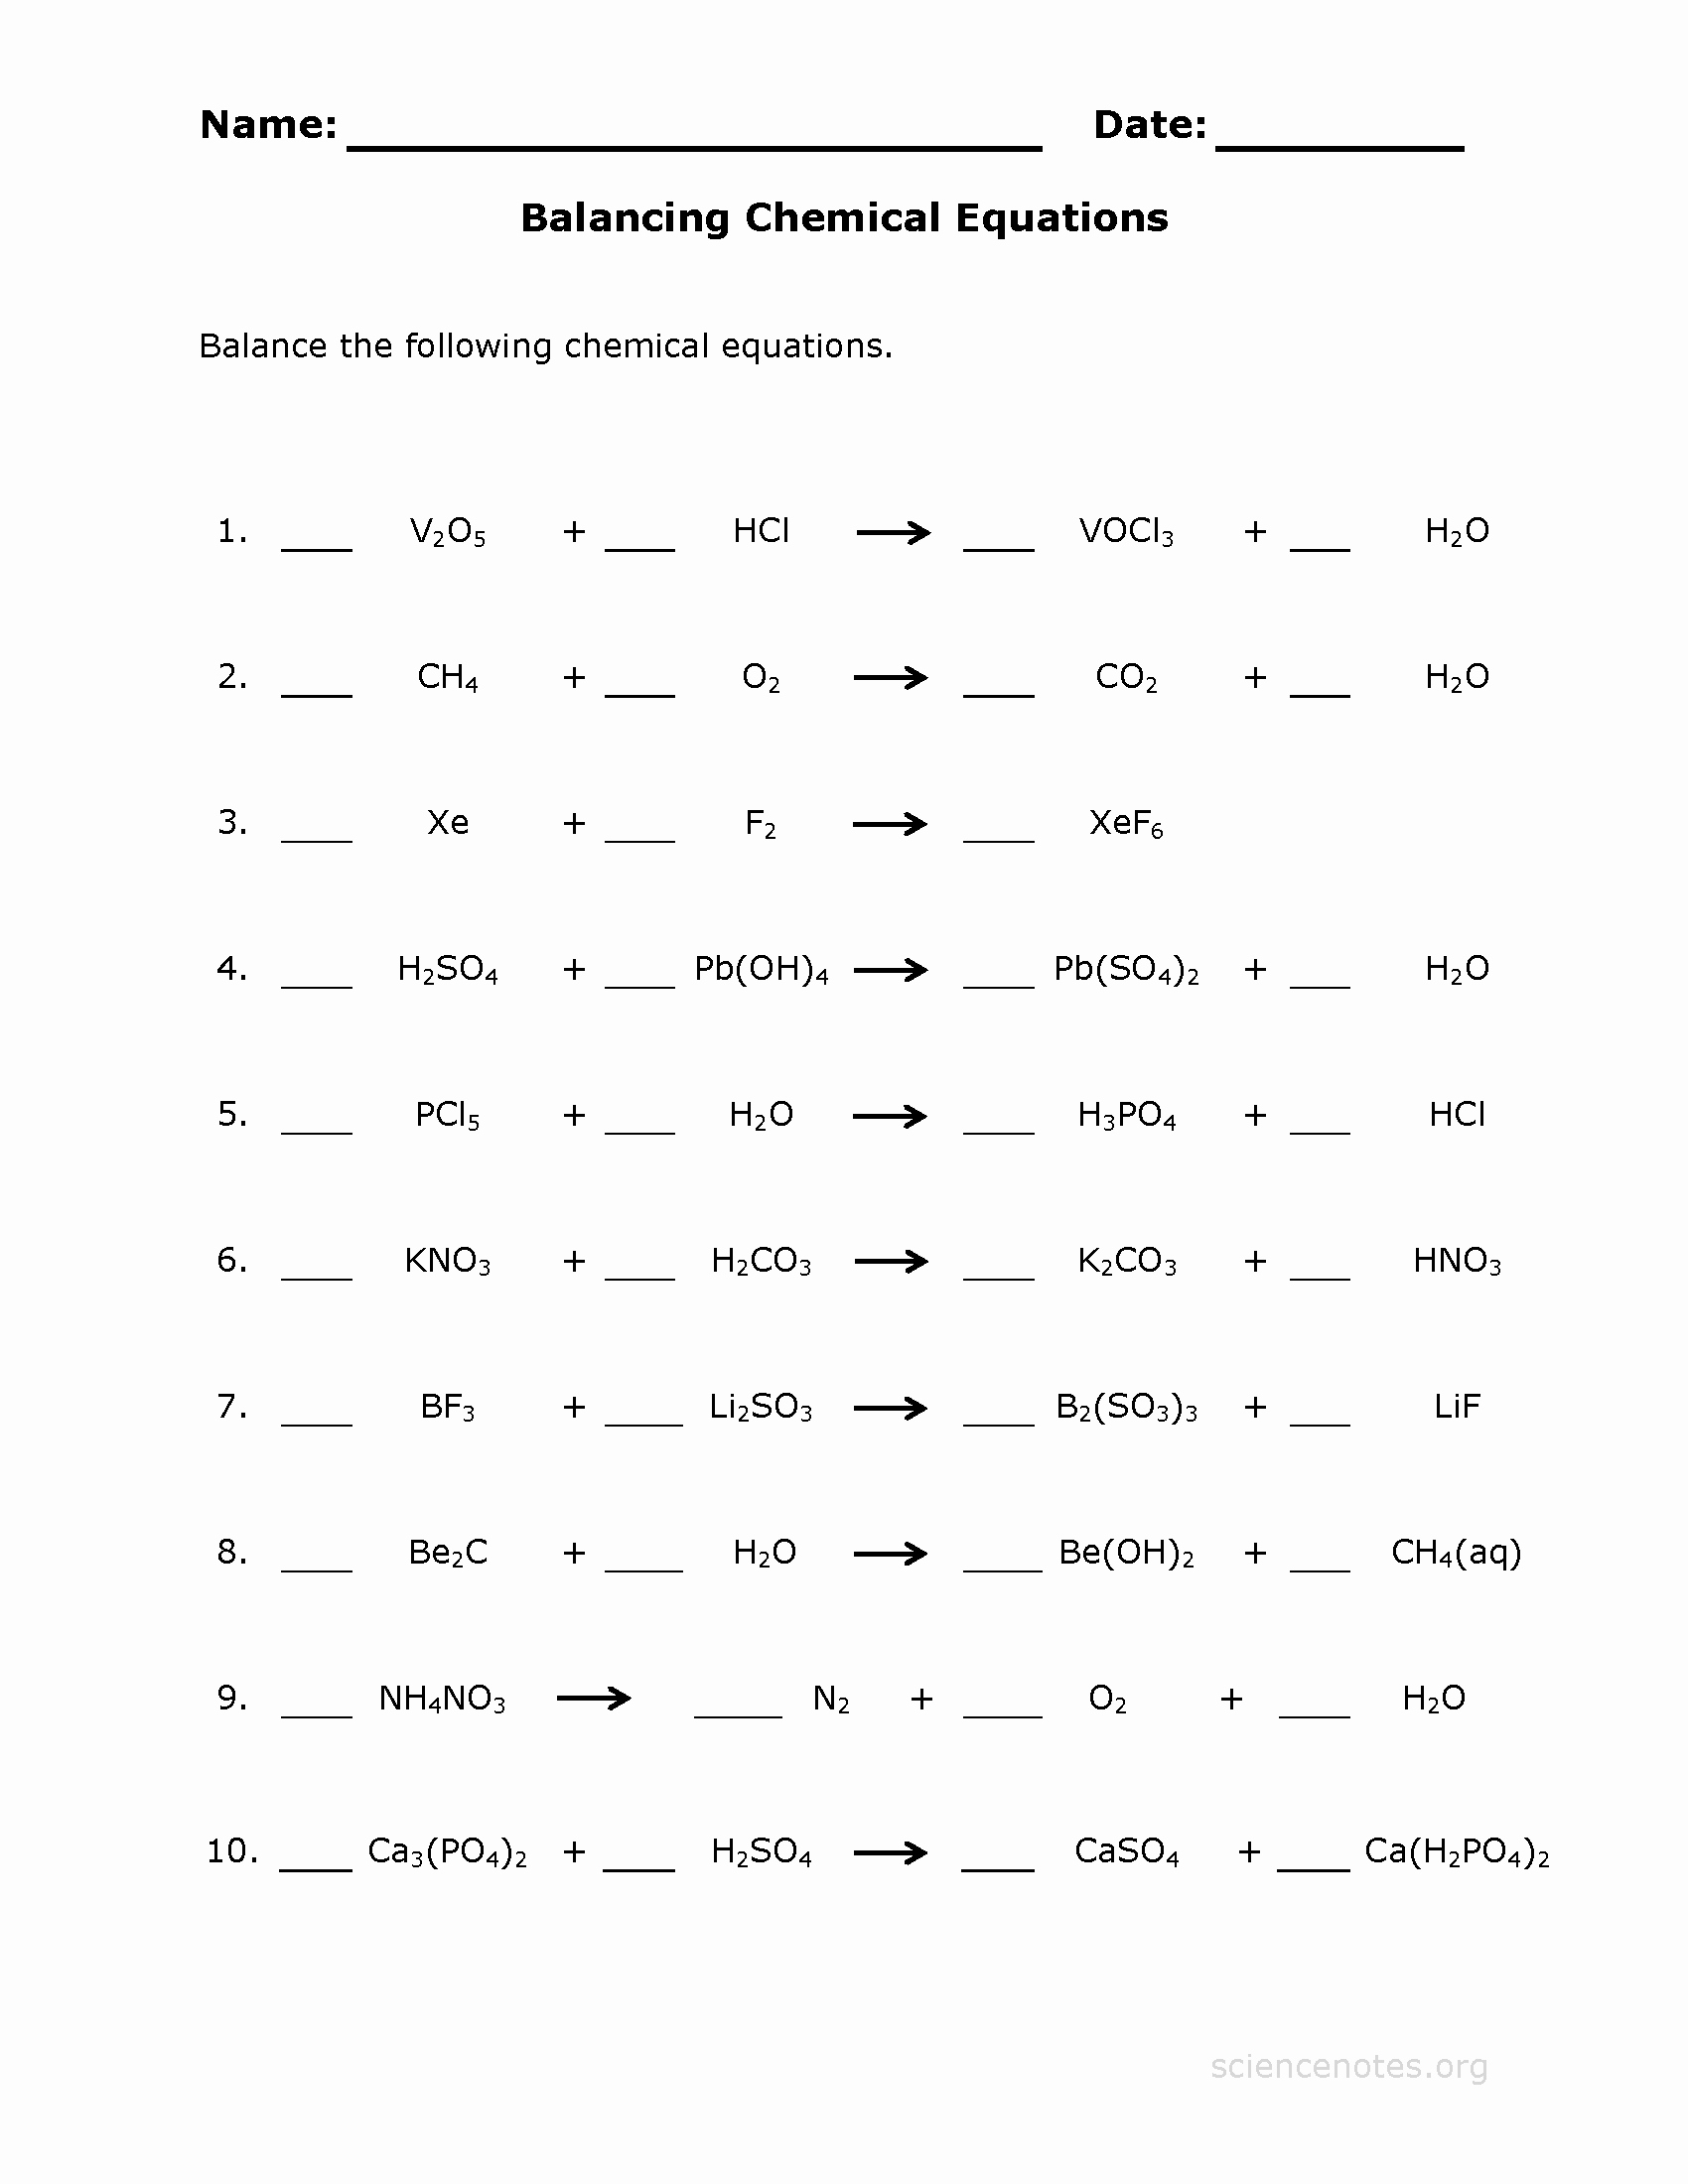 Balancing Equations Worksheet Answers Awesome Balancing Chemical Reactions Archives Science Notes and